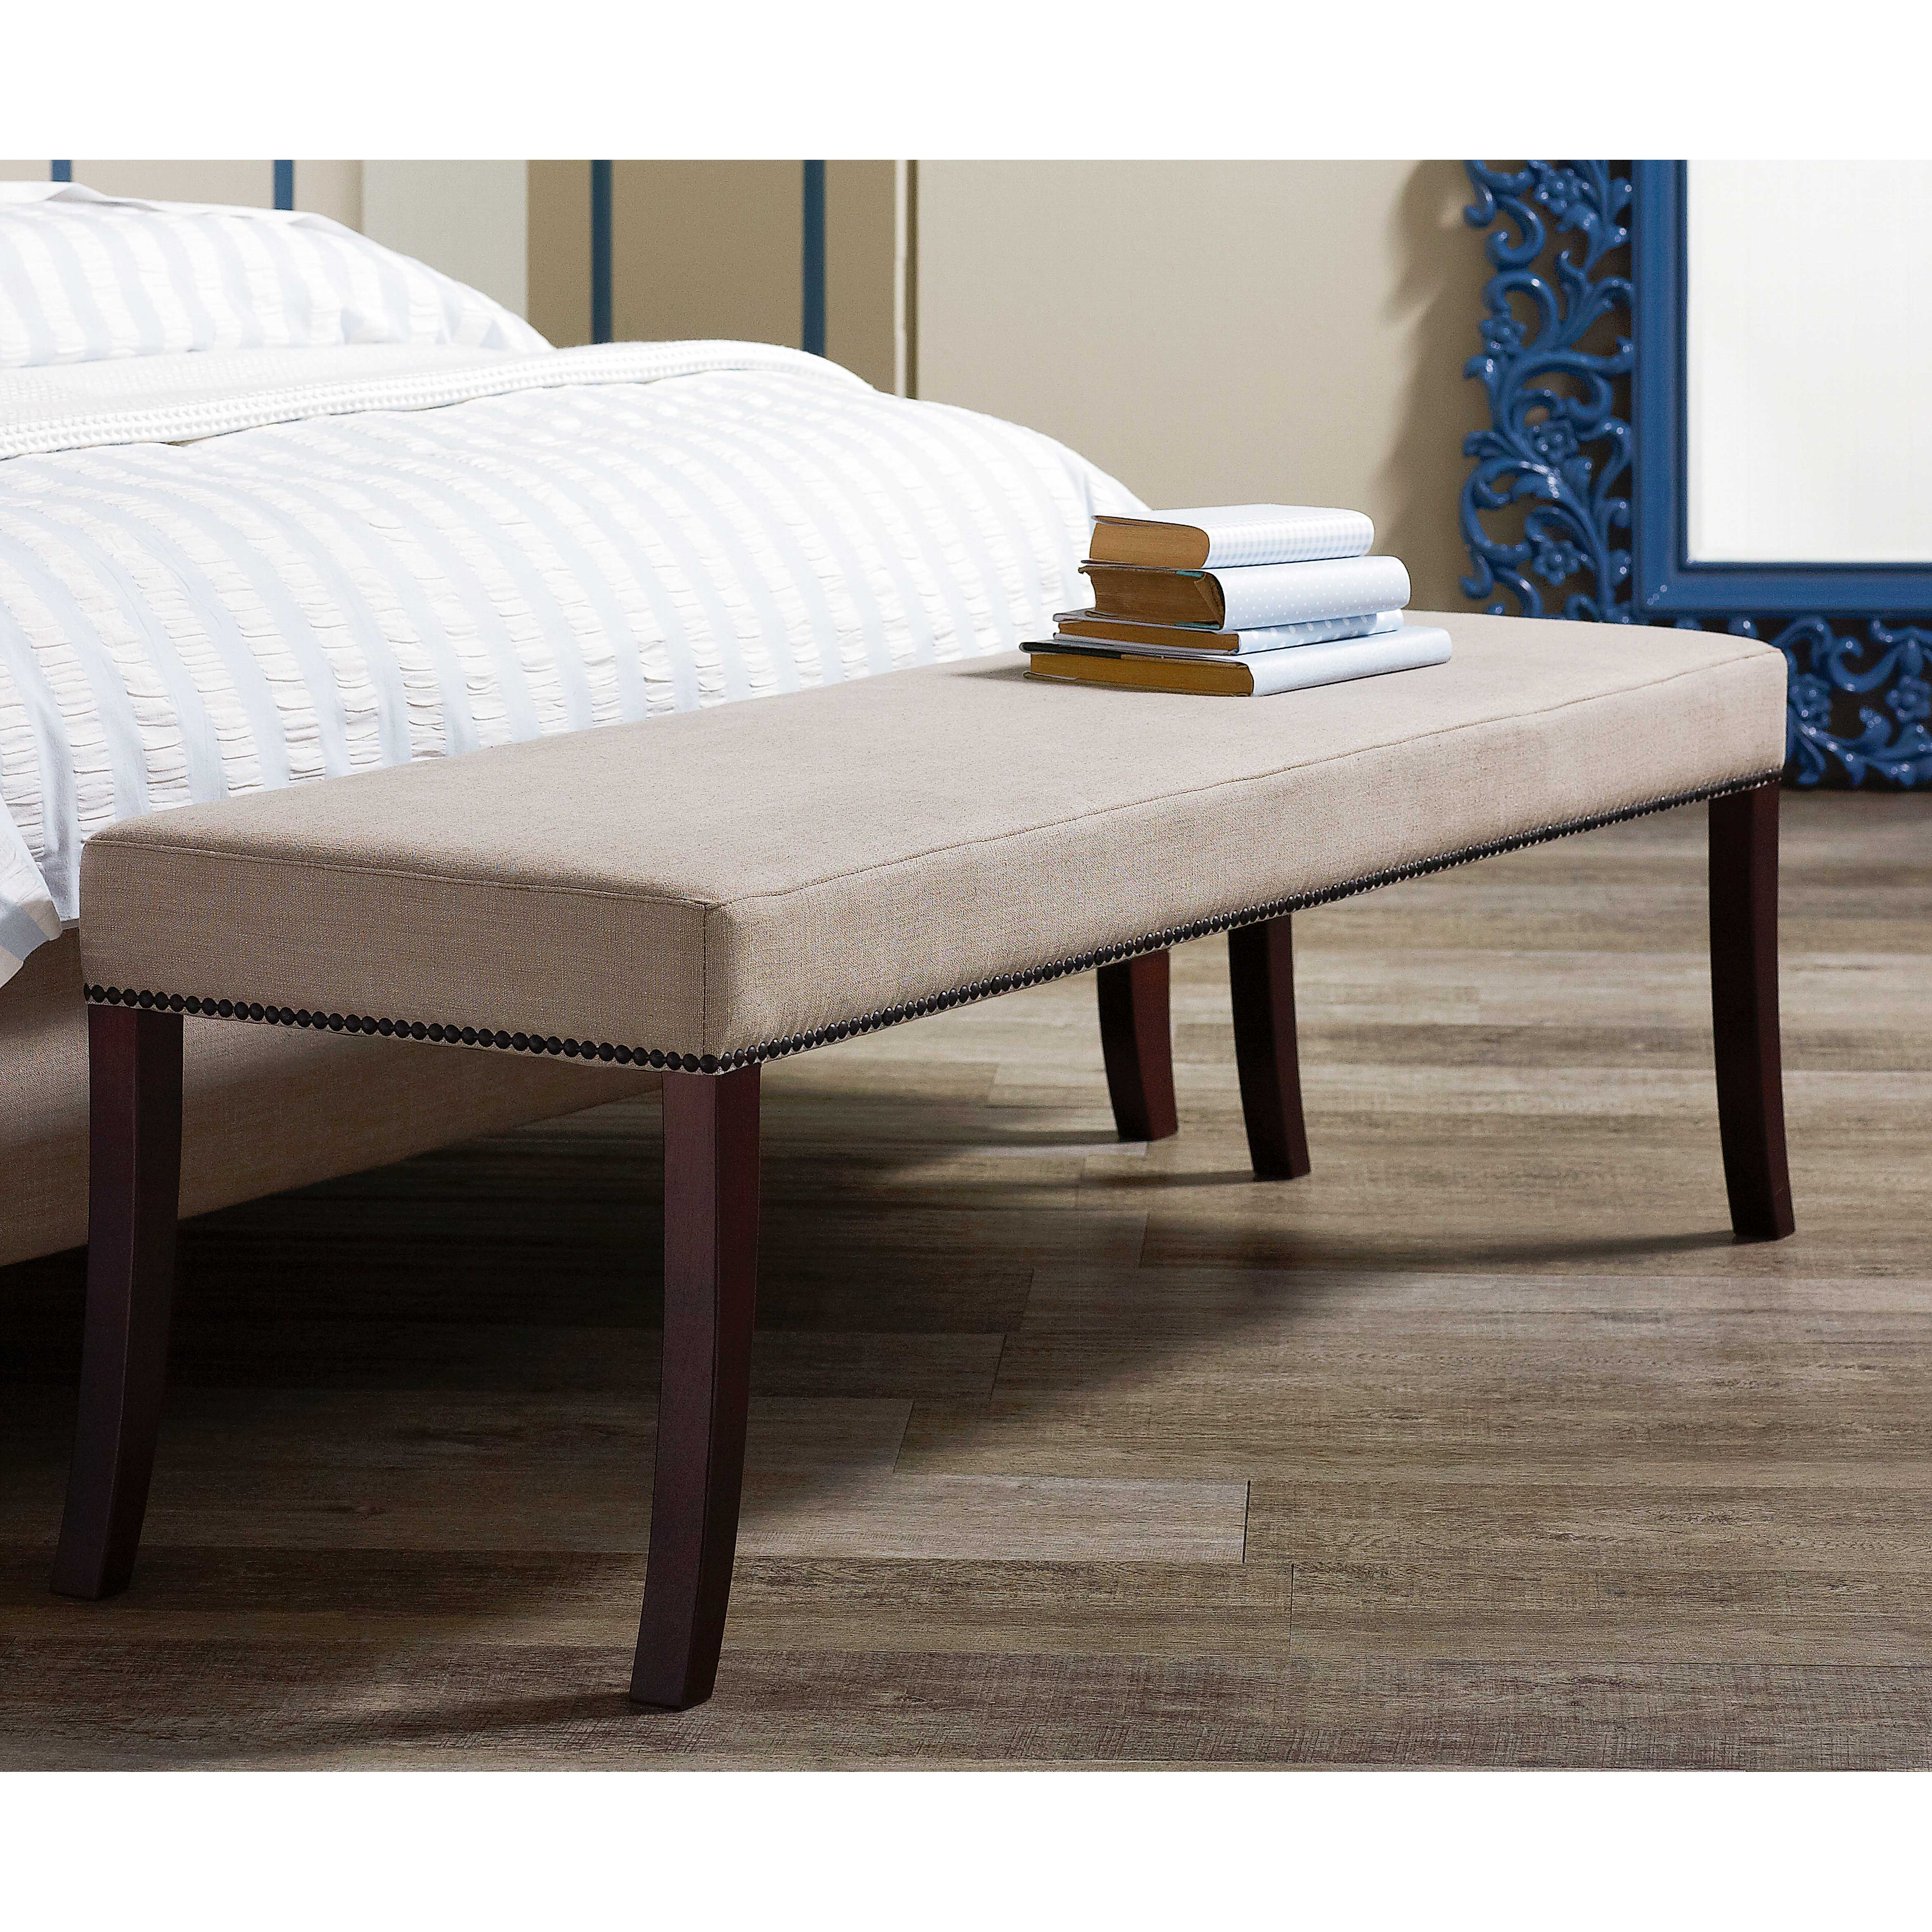 Bench By Bed: Ravena Bed Bench